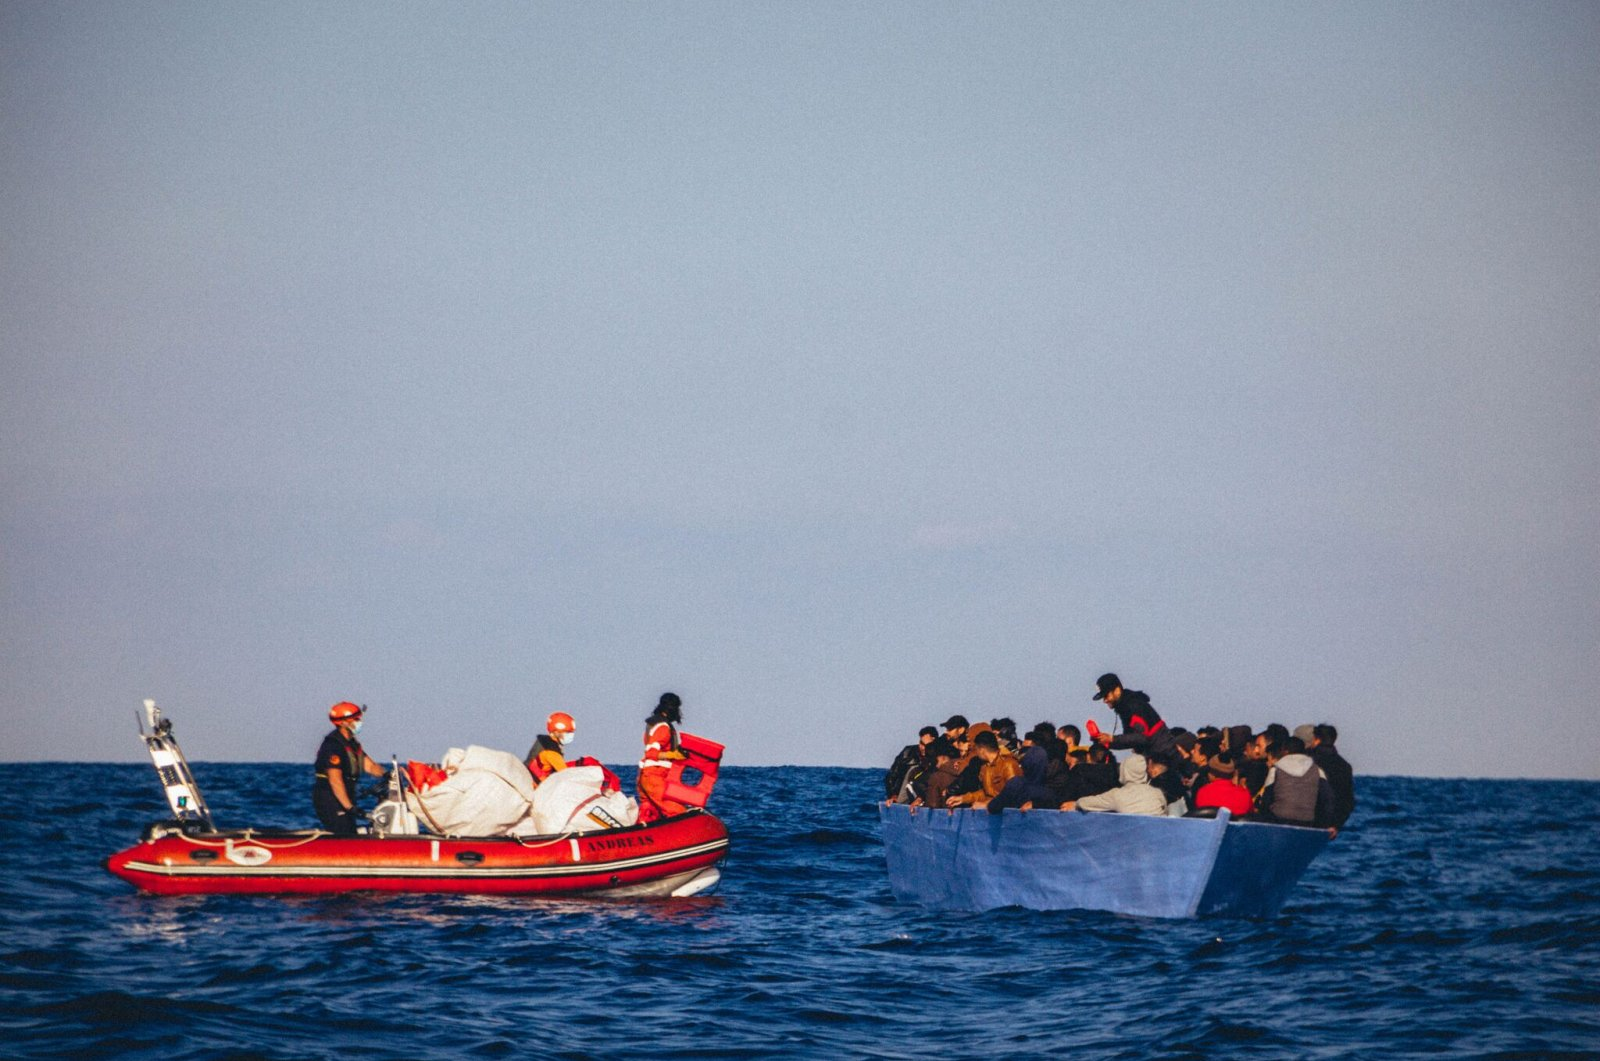 """A handout picture released by German migrant rescue NGO Sea-Eye and taken on April 6, 2020, shows members of the NGO on a rubber boat during an operation to rescue people from a small wooden boat in distress off the Libyan coast, before bringing them onboard their vessel """"Alan Kurdi"""". (AFP Photo)"""